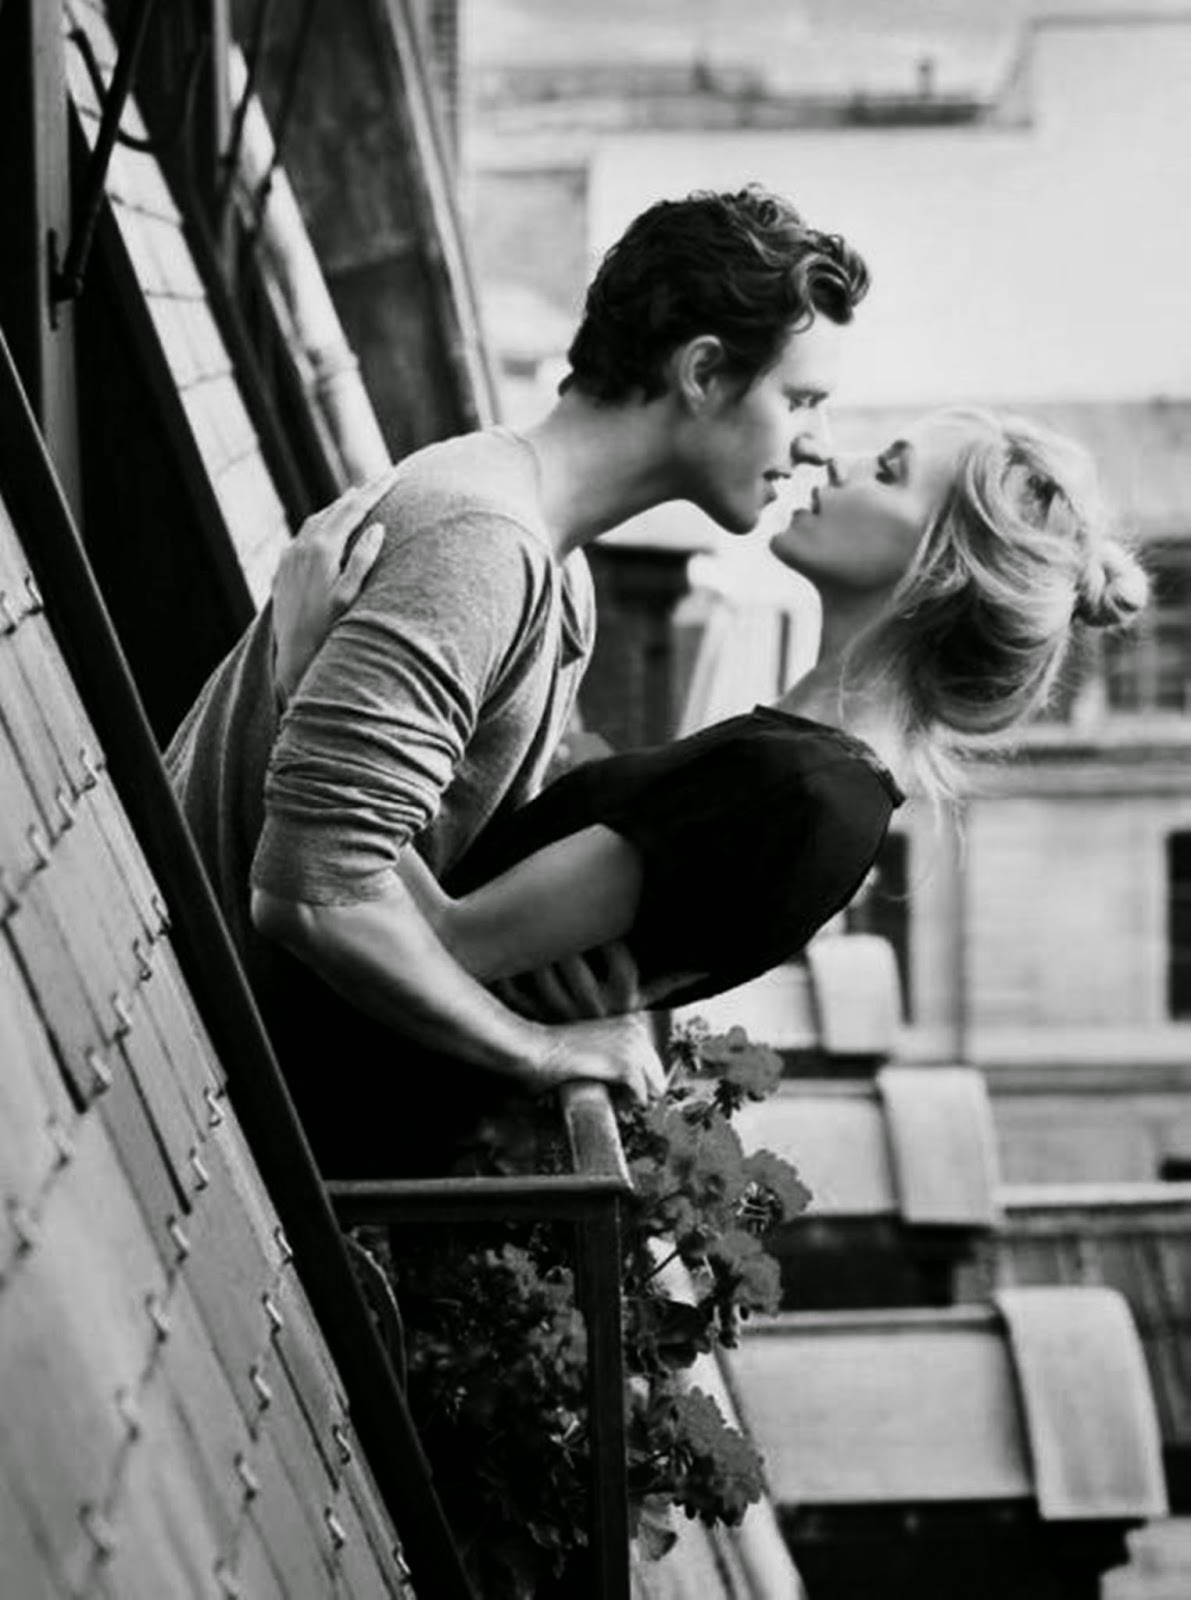 boy and girl in love black and white picture kiss day.jpg